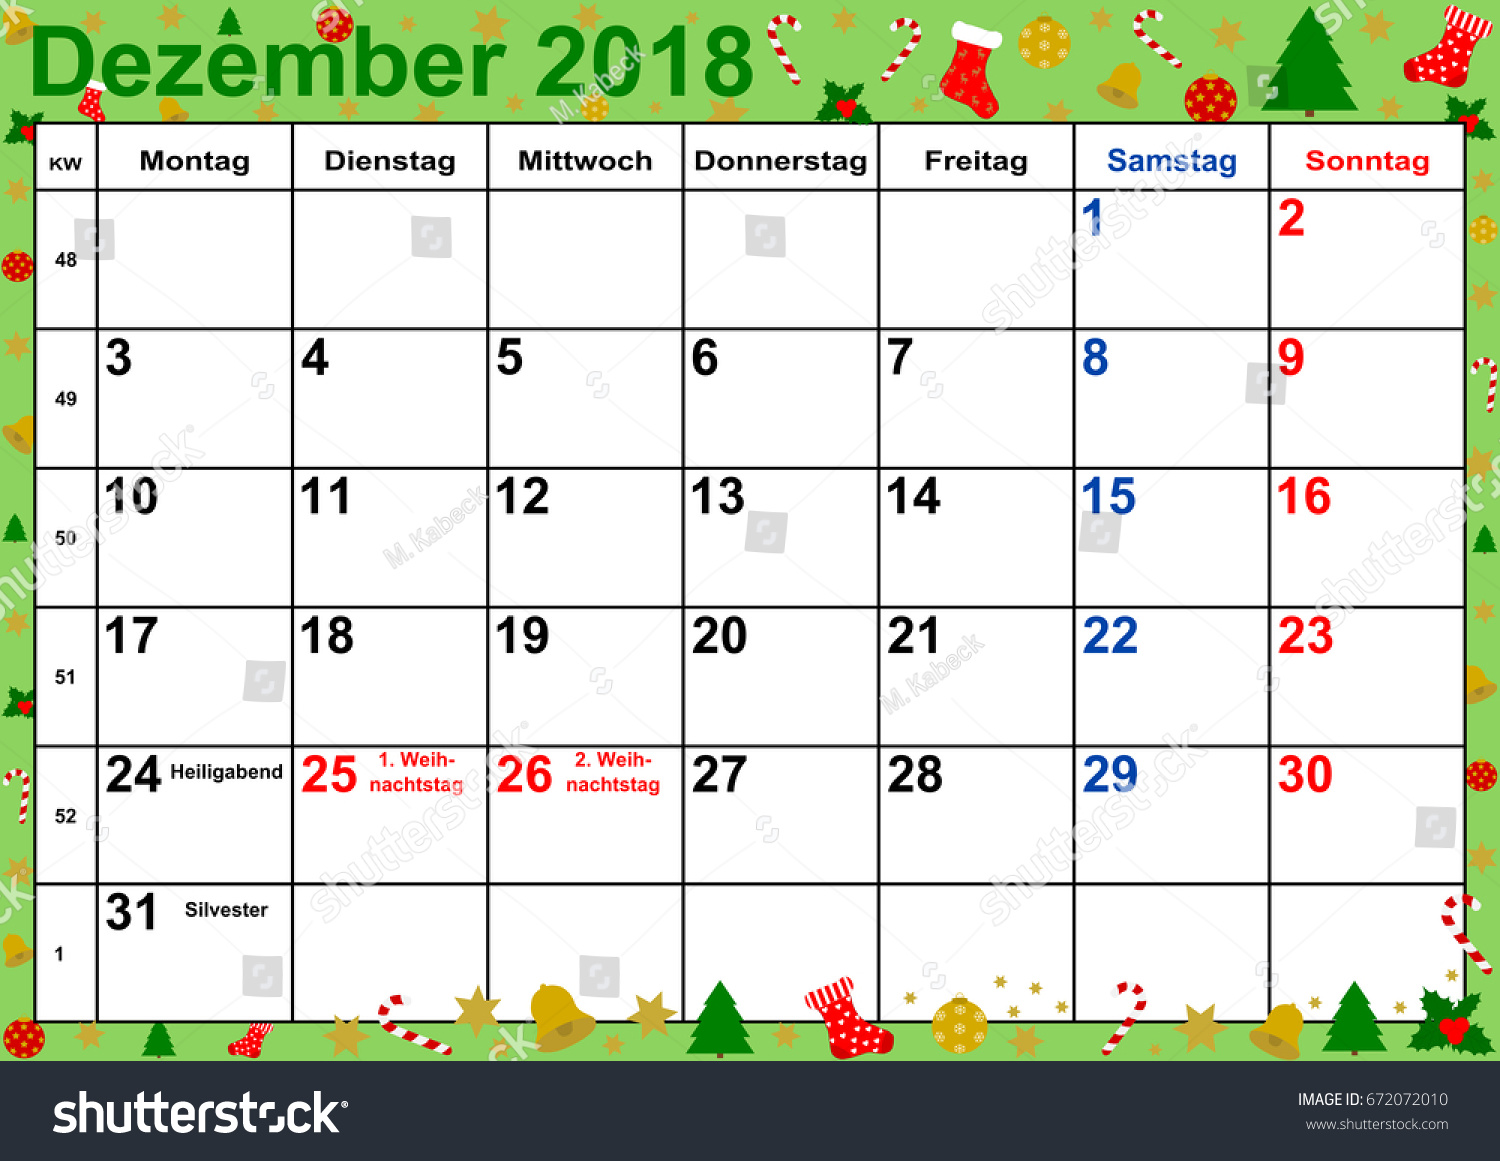 calendar 2018 month december with public holidays for germany on green background with christmas motifs